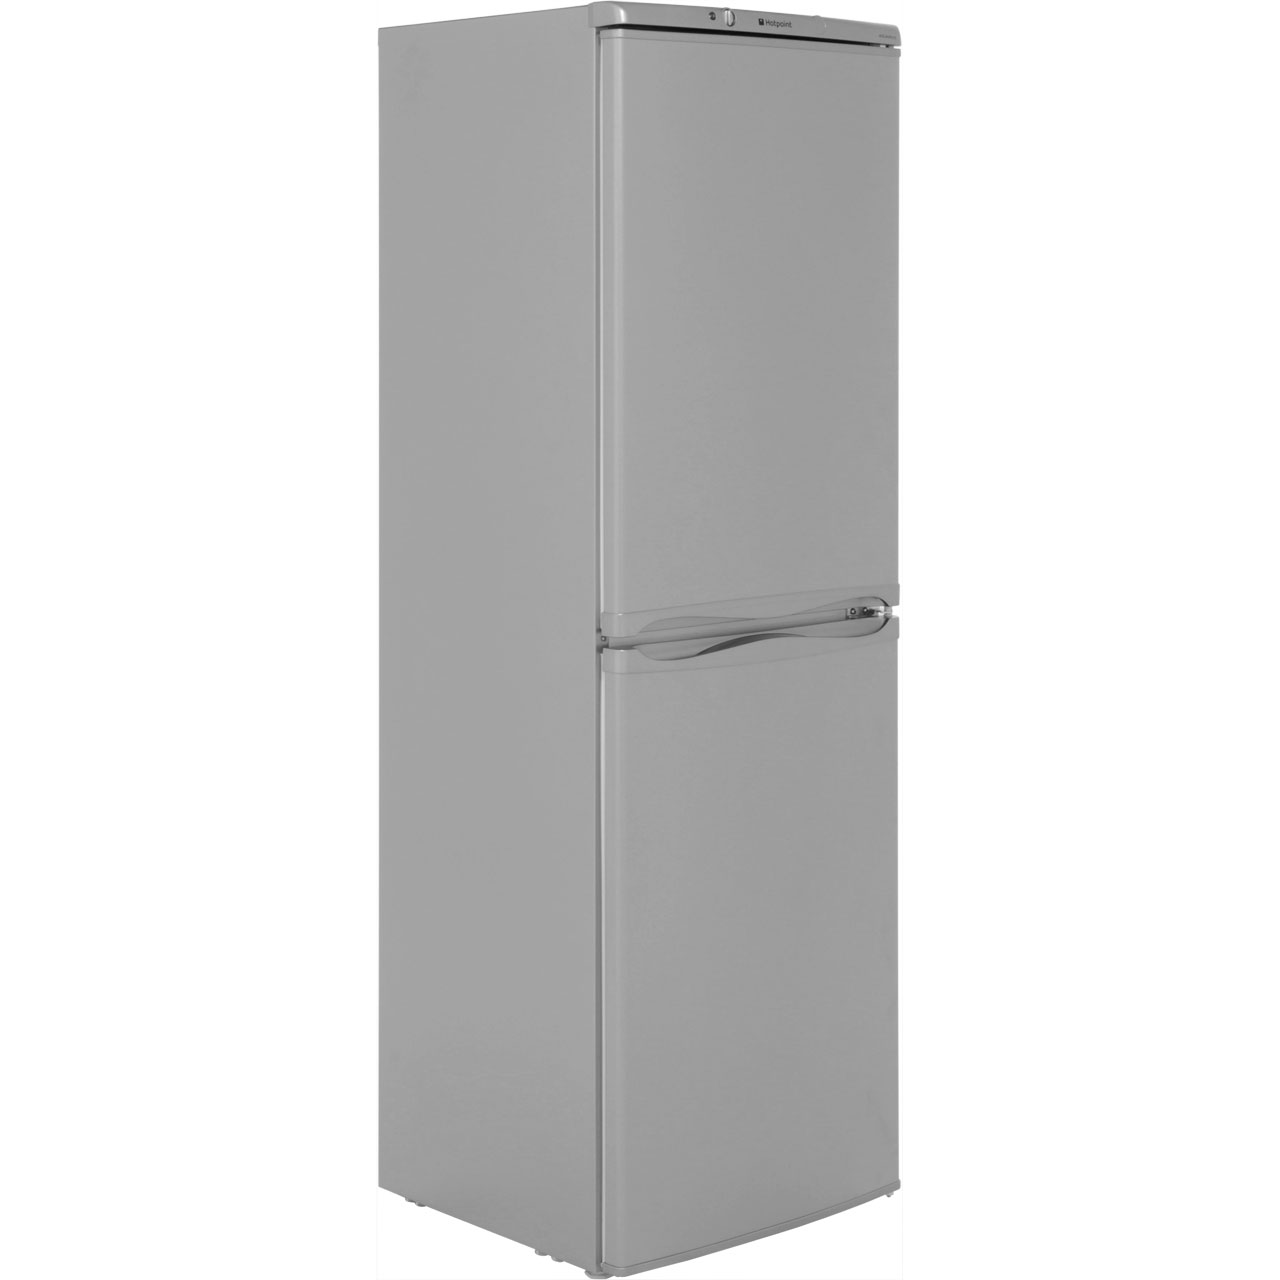 Hotpoint Aquarius FFAA52S Free Standing Fridge Freezer Frost Free in Silver